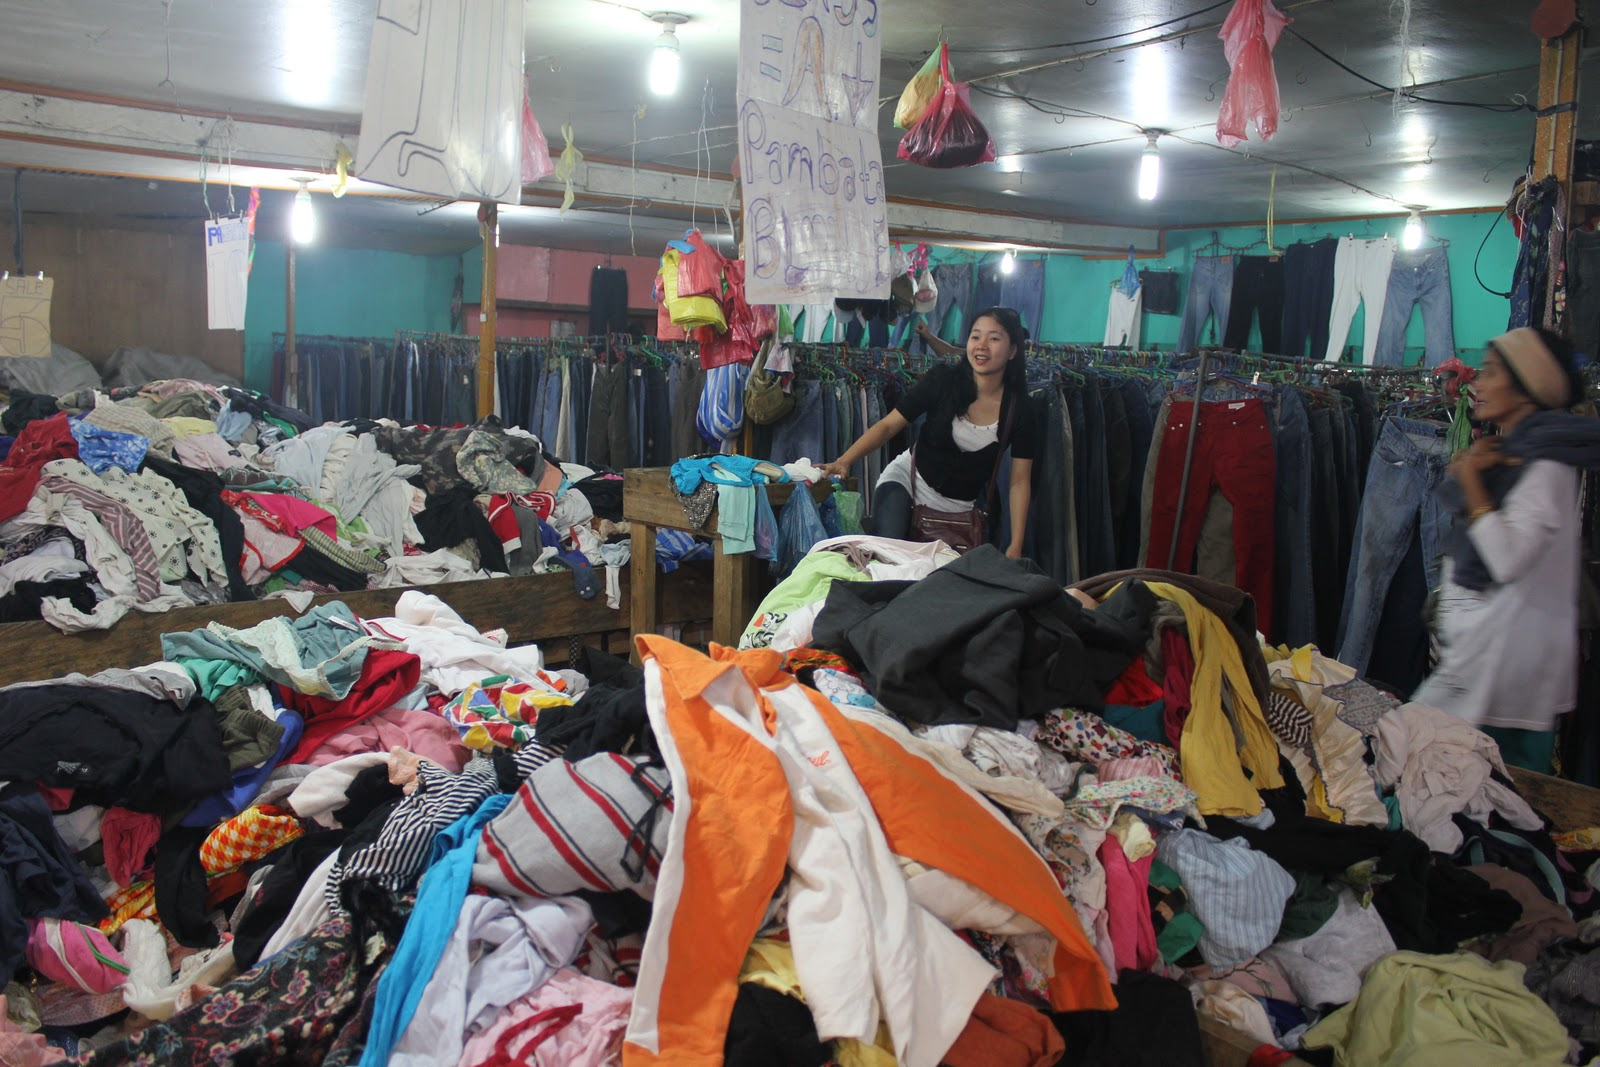 ukay ukay Ukay-ukay shopping is like treasure hunting, but instead of looking for a treasure, you are literally digging from the piles of clothes which are mostly vintage and of high value the ukay shopping phenomena all started in baguio.